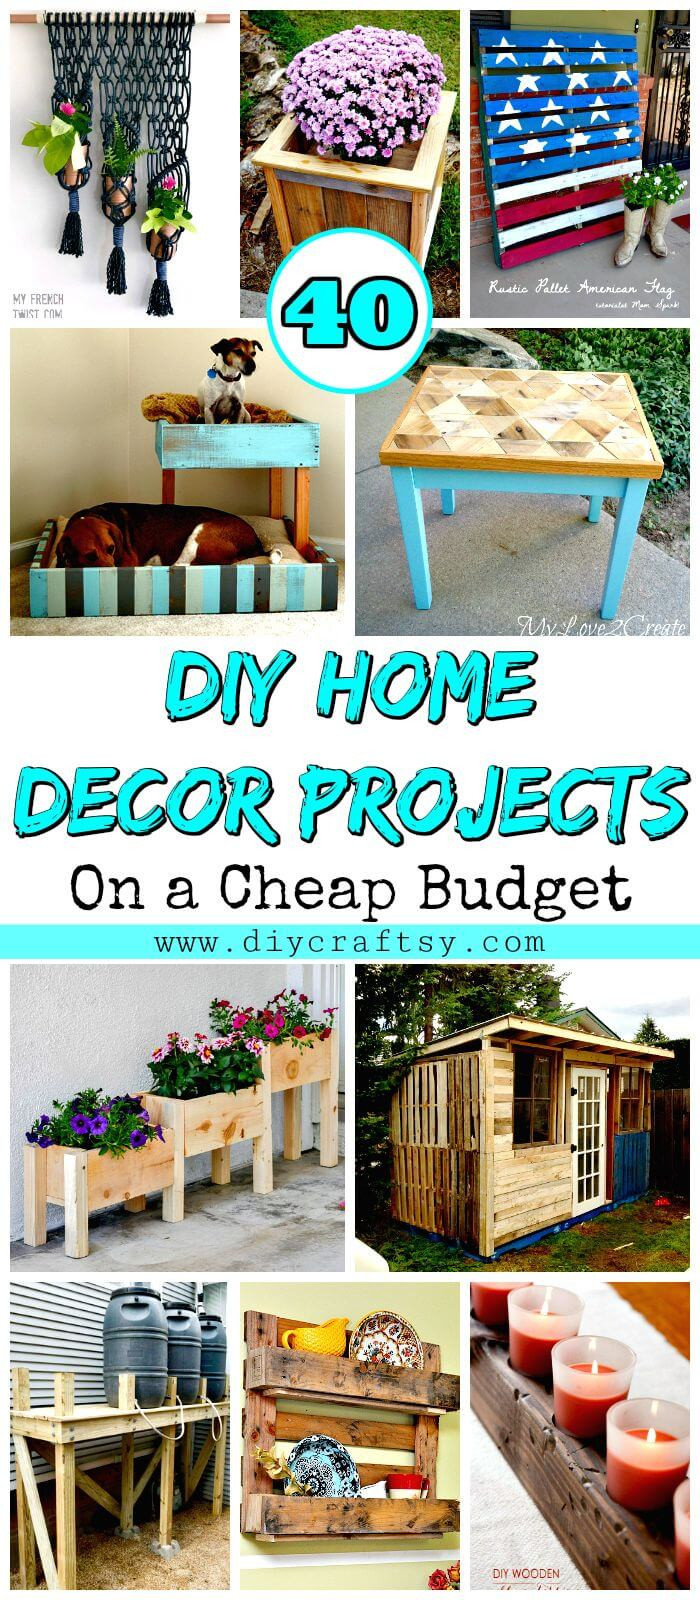 Best ideas about DIY Home Decor Crafts . Save or Pin 40 DIY Home Decor Projects on a Cheap Bud DIY & Crafts Now.